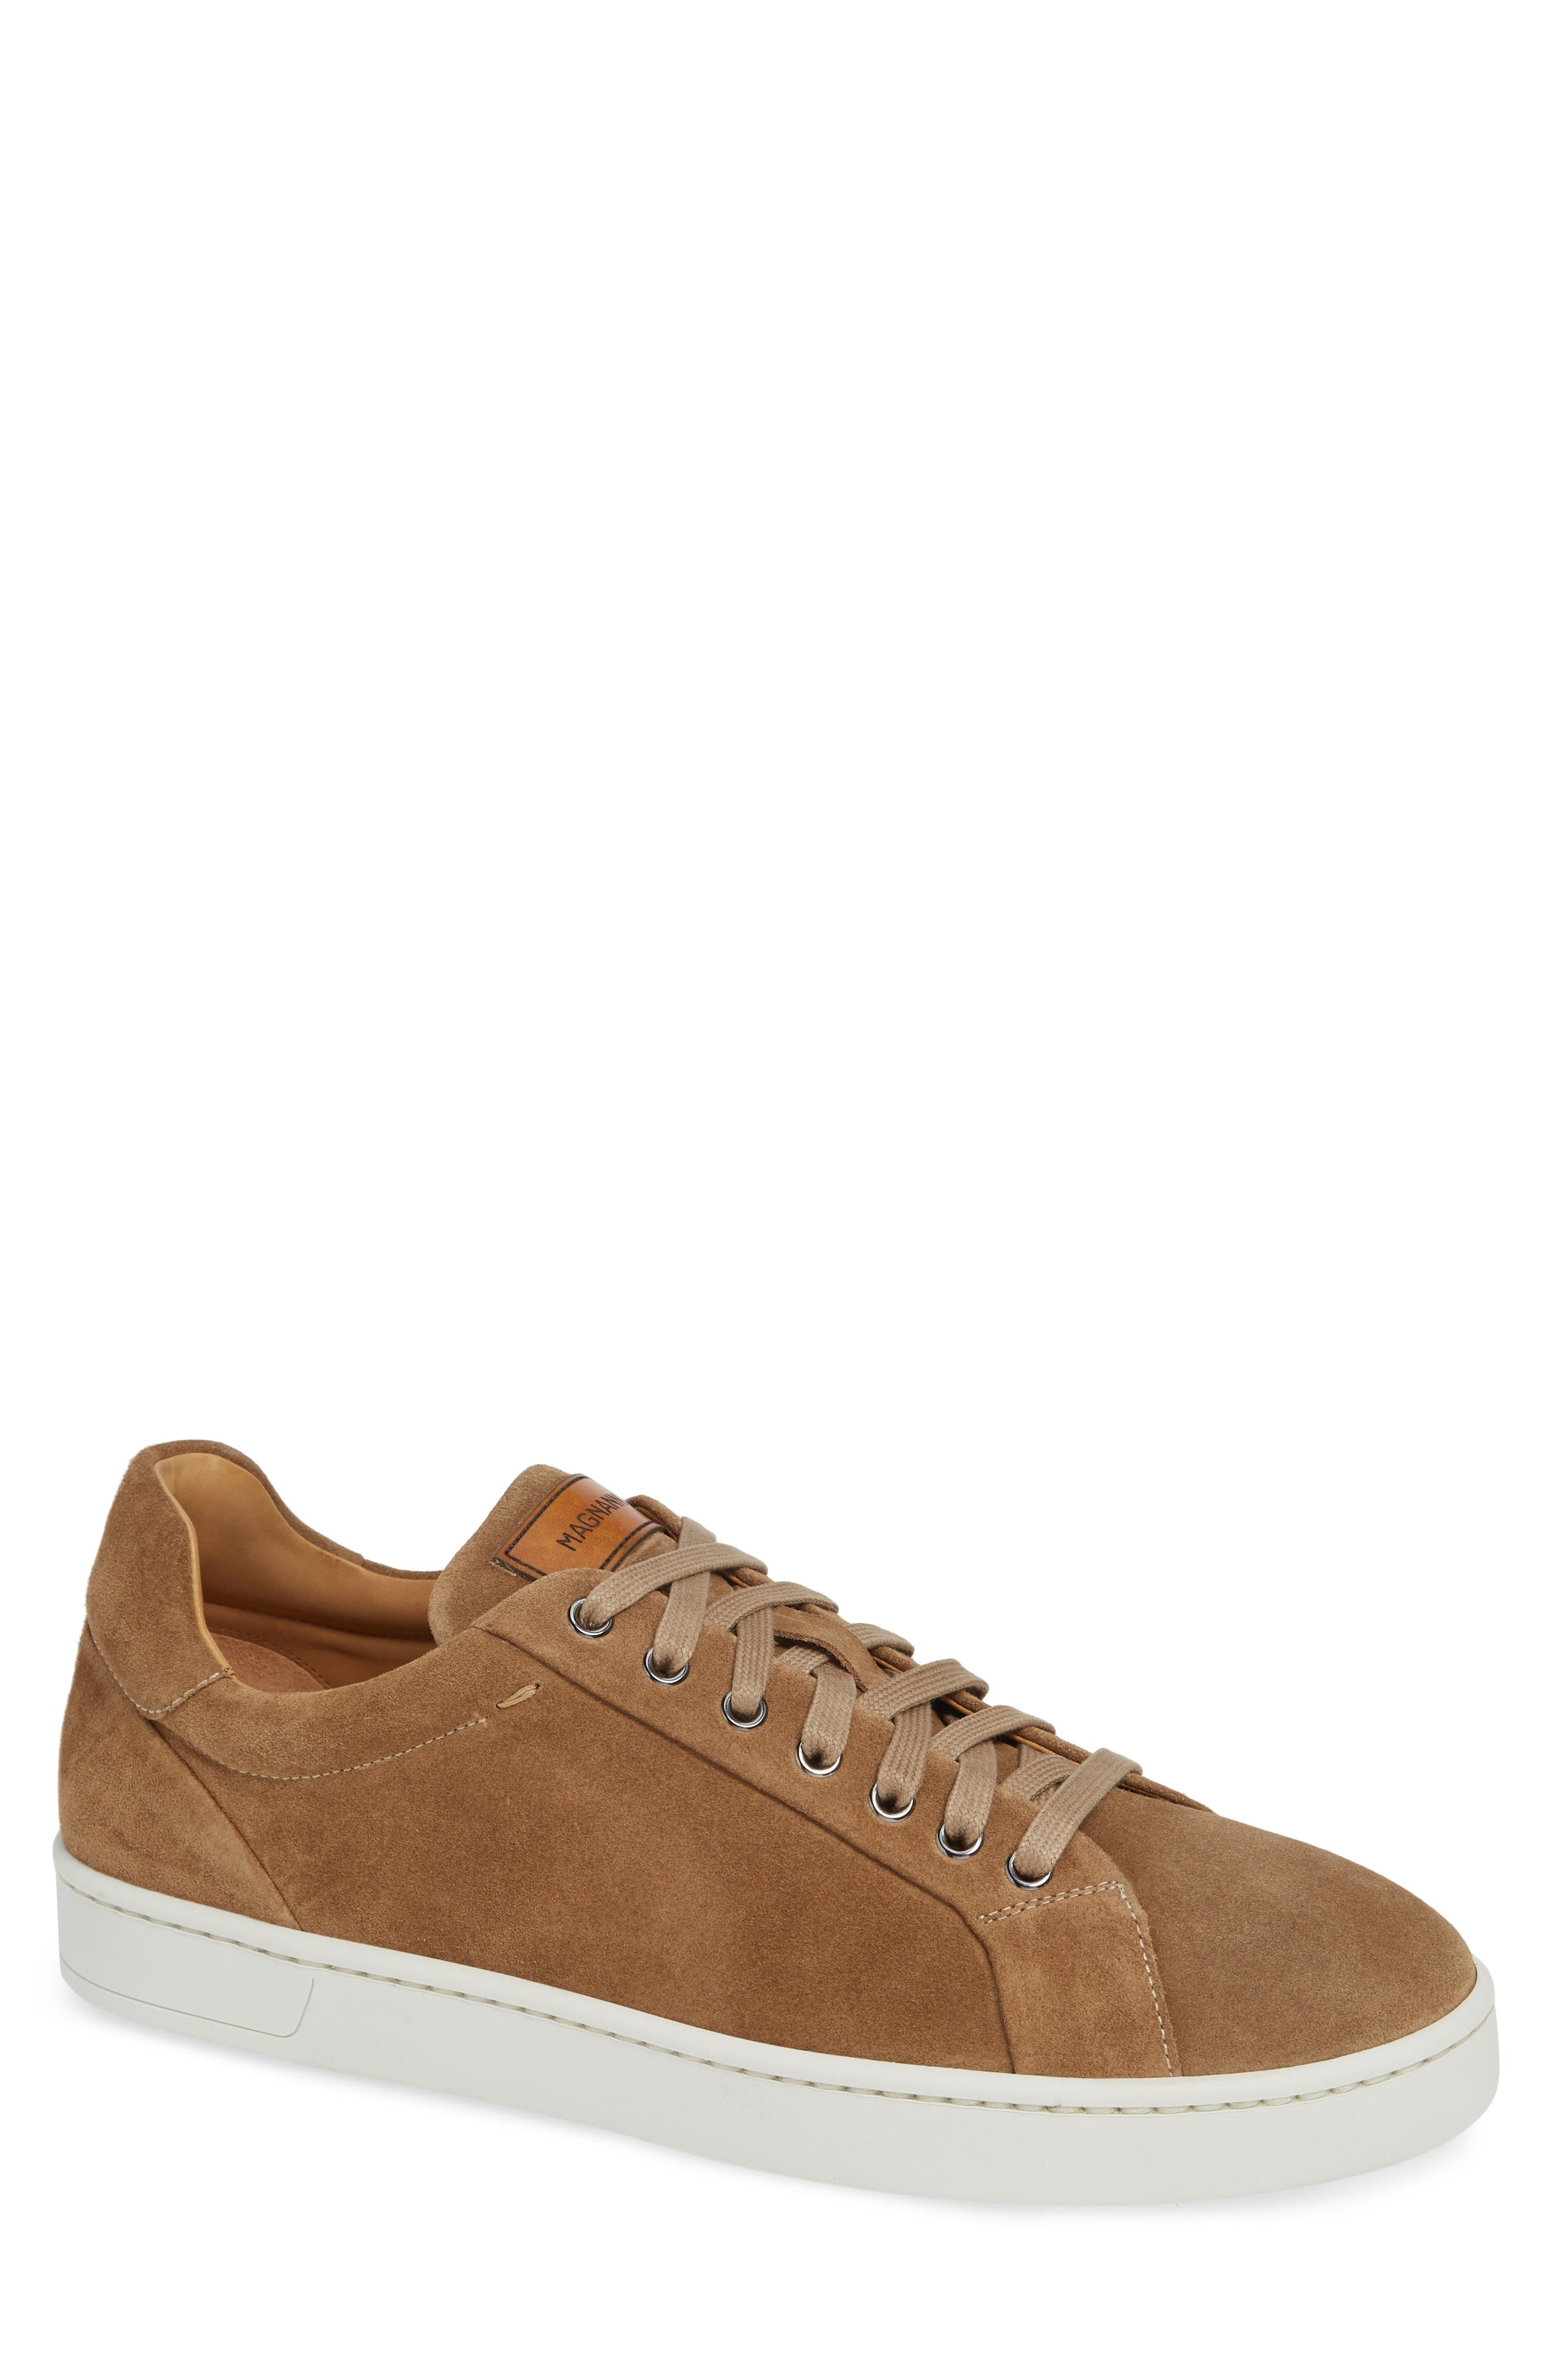 Elonso Low Top Sneaker,                             Main thumbnail 1, color,                             CASTORO LEATHER